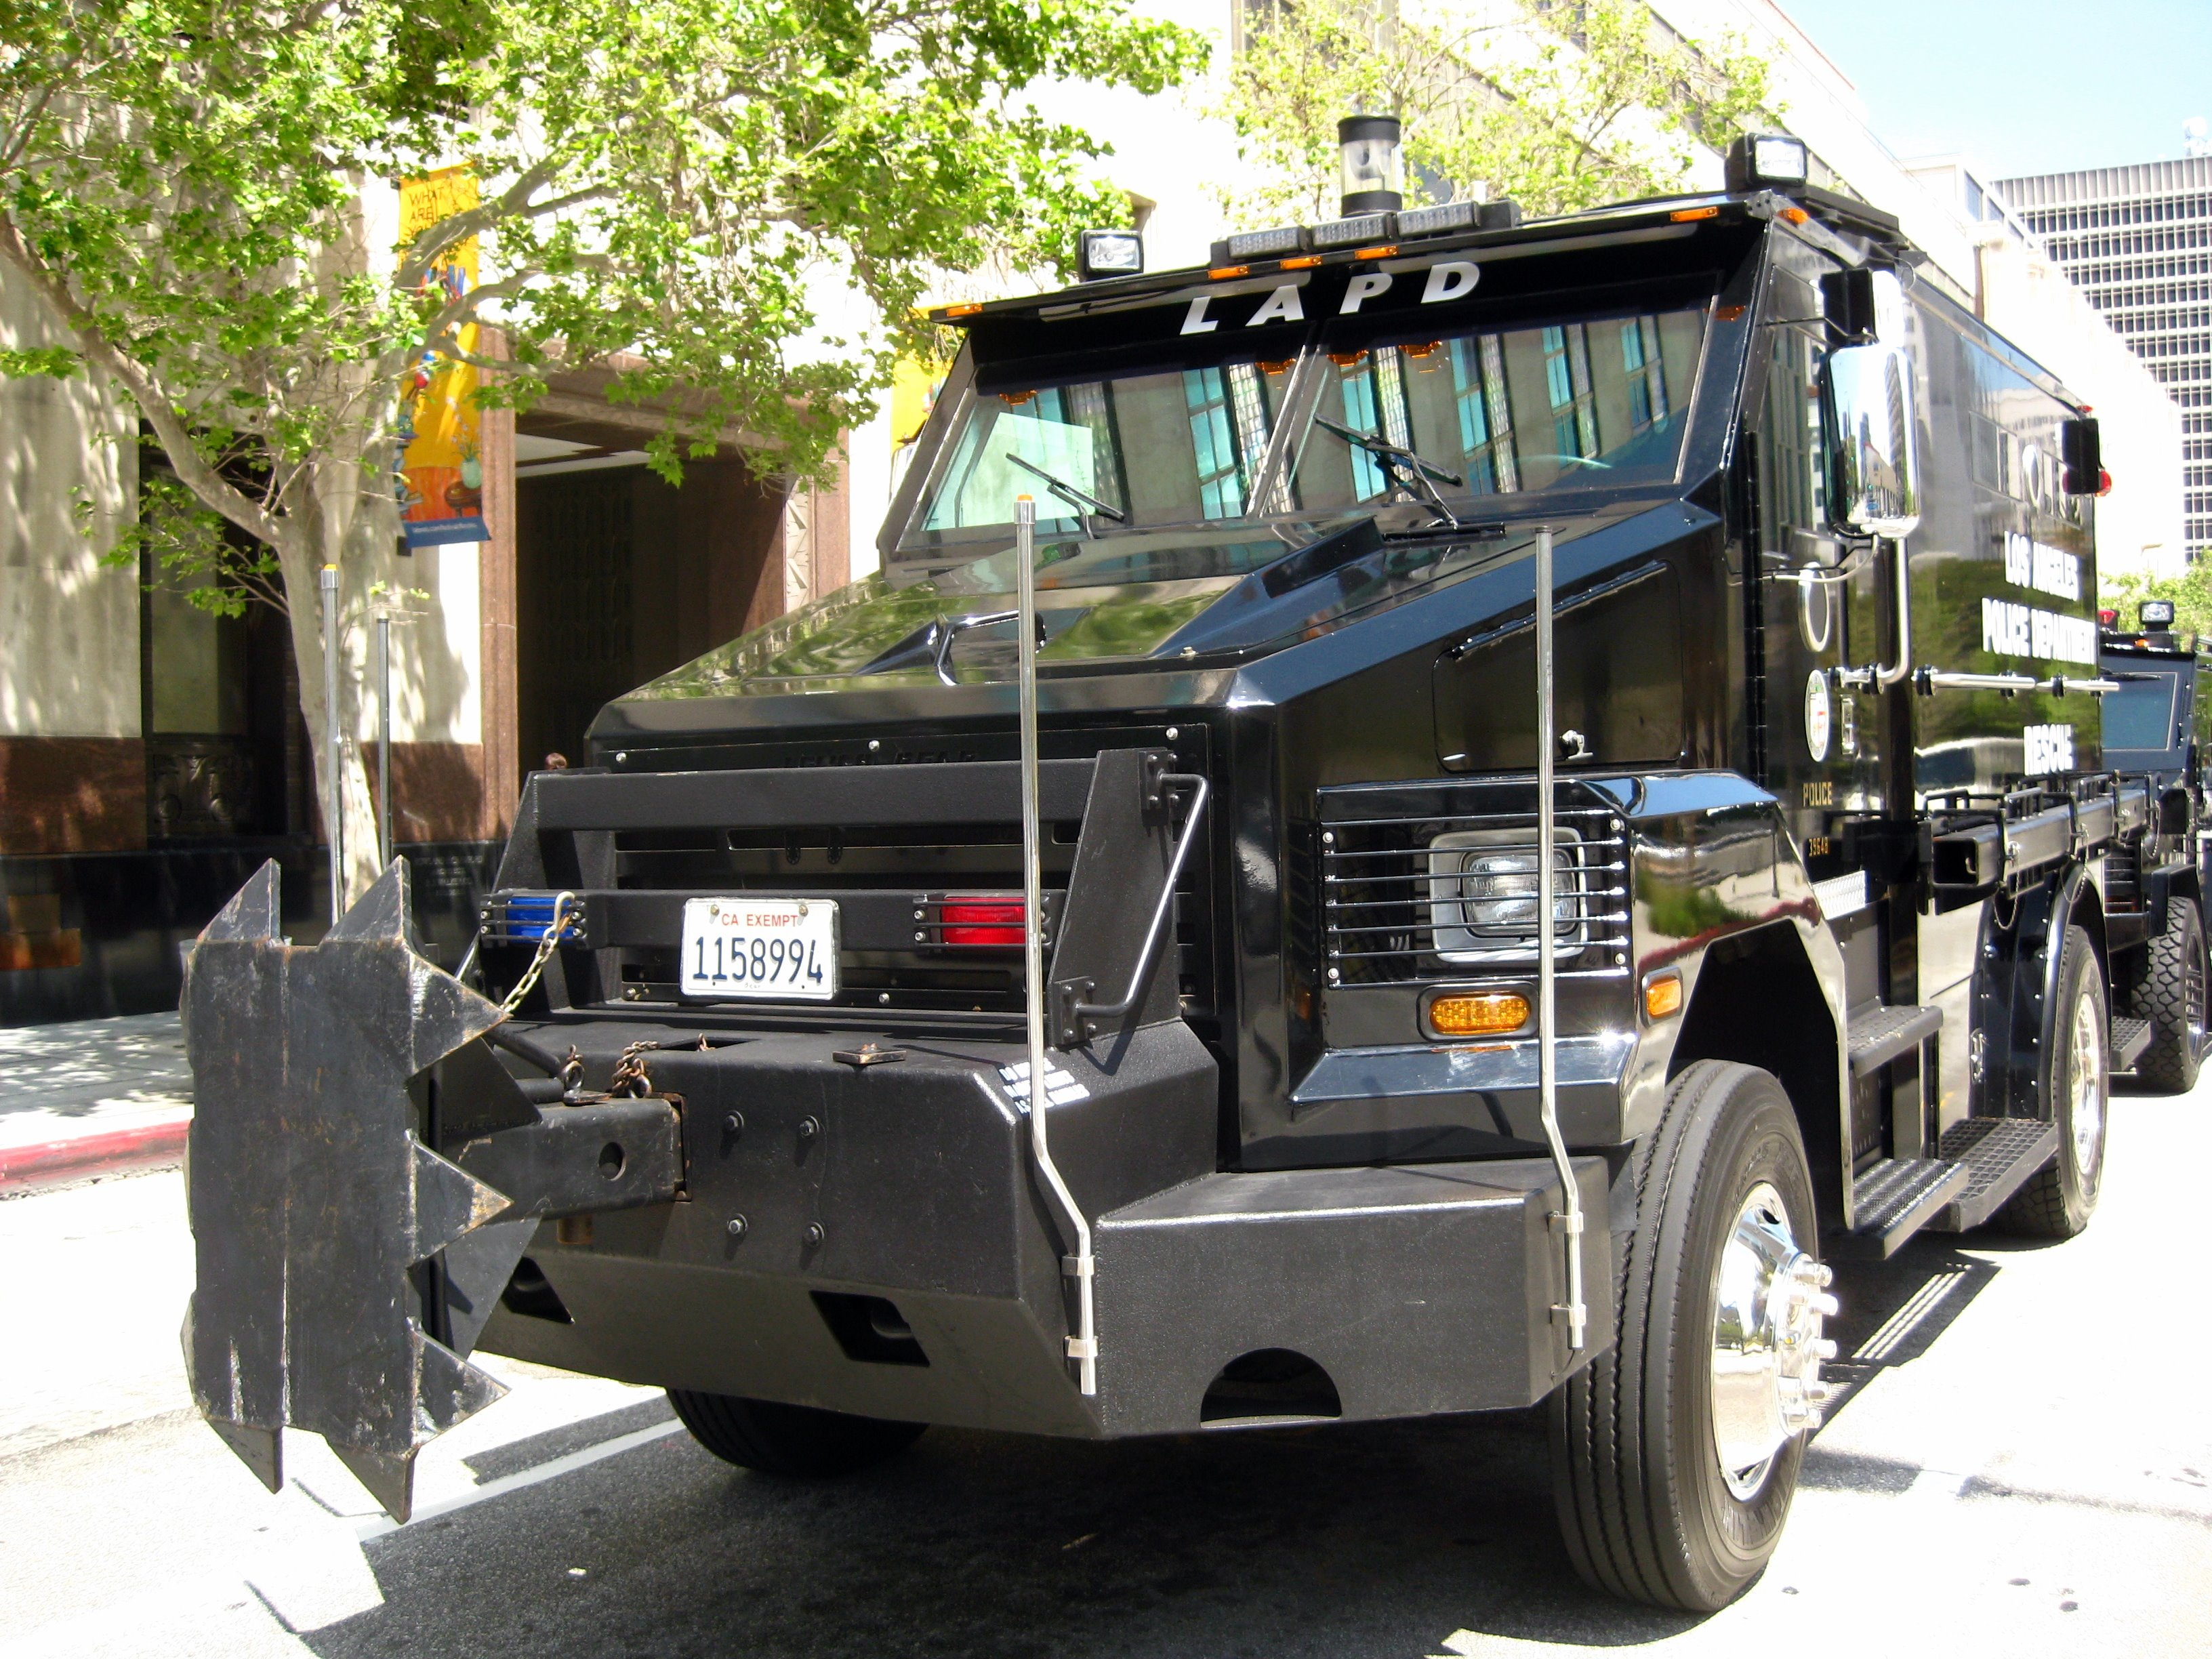 Police Cop Car Live Wallpaper File Lapd Swat Rescue Vehicle Front Jpg Wikimedia Commons